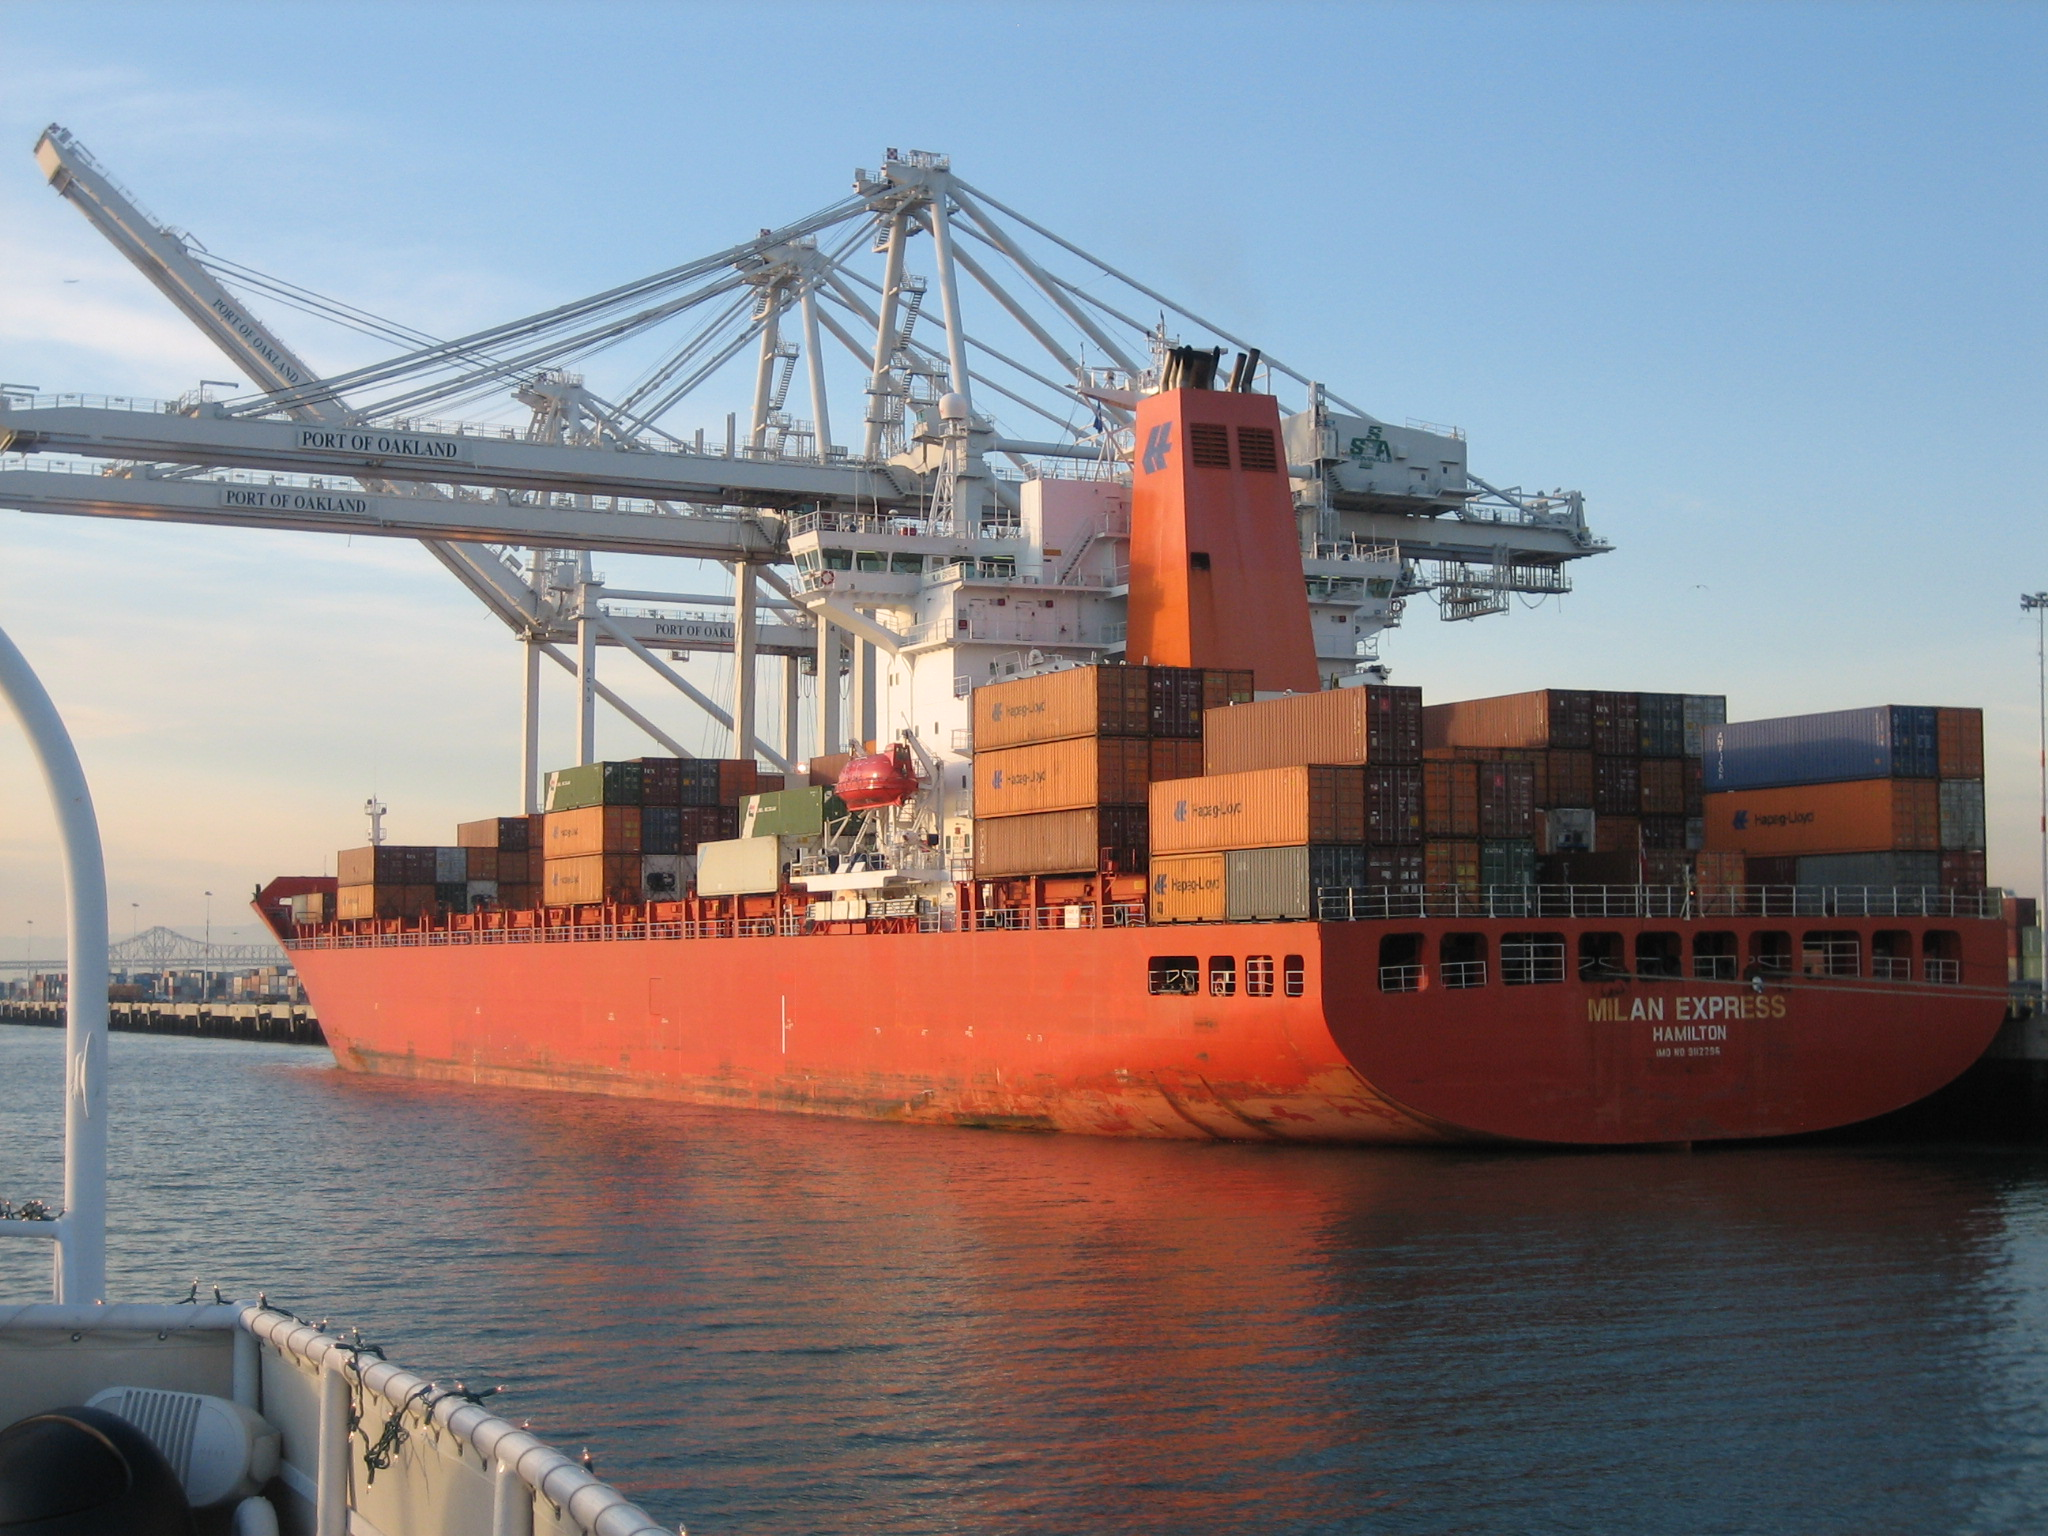 Shipping Container Ship at Port